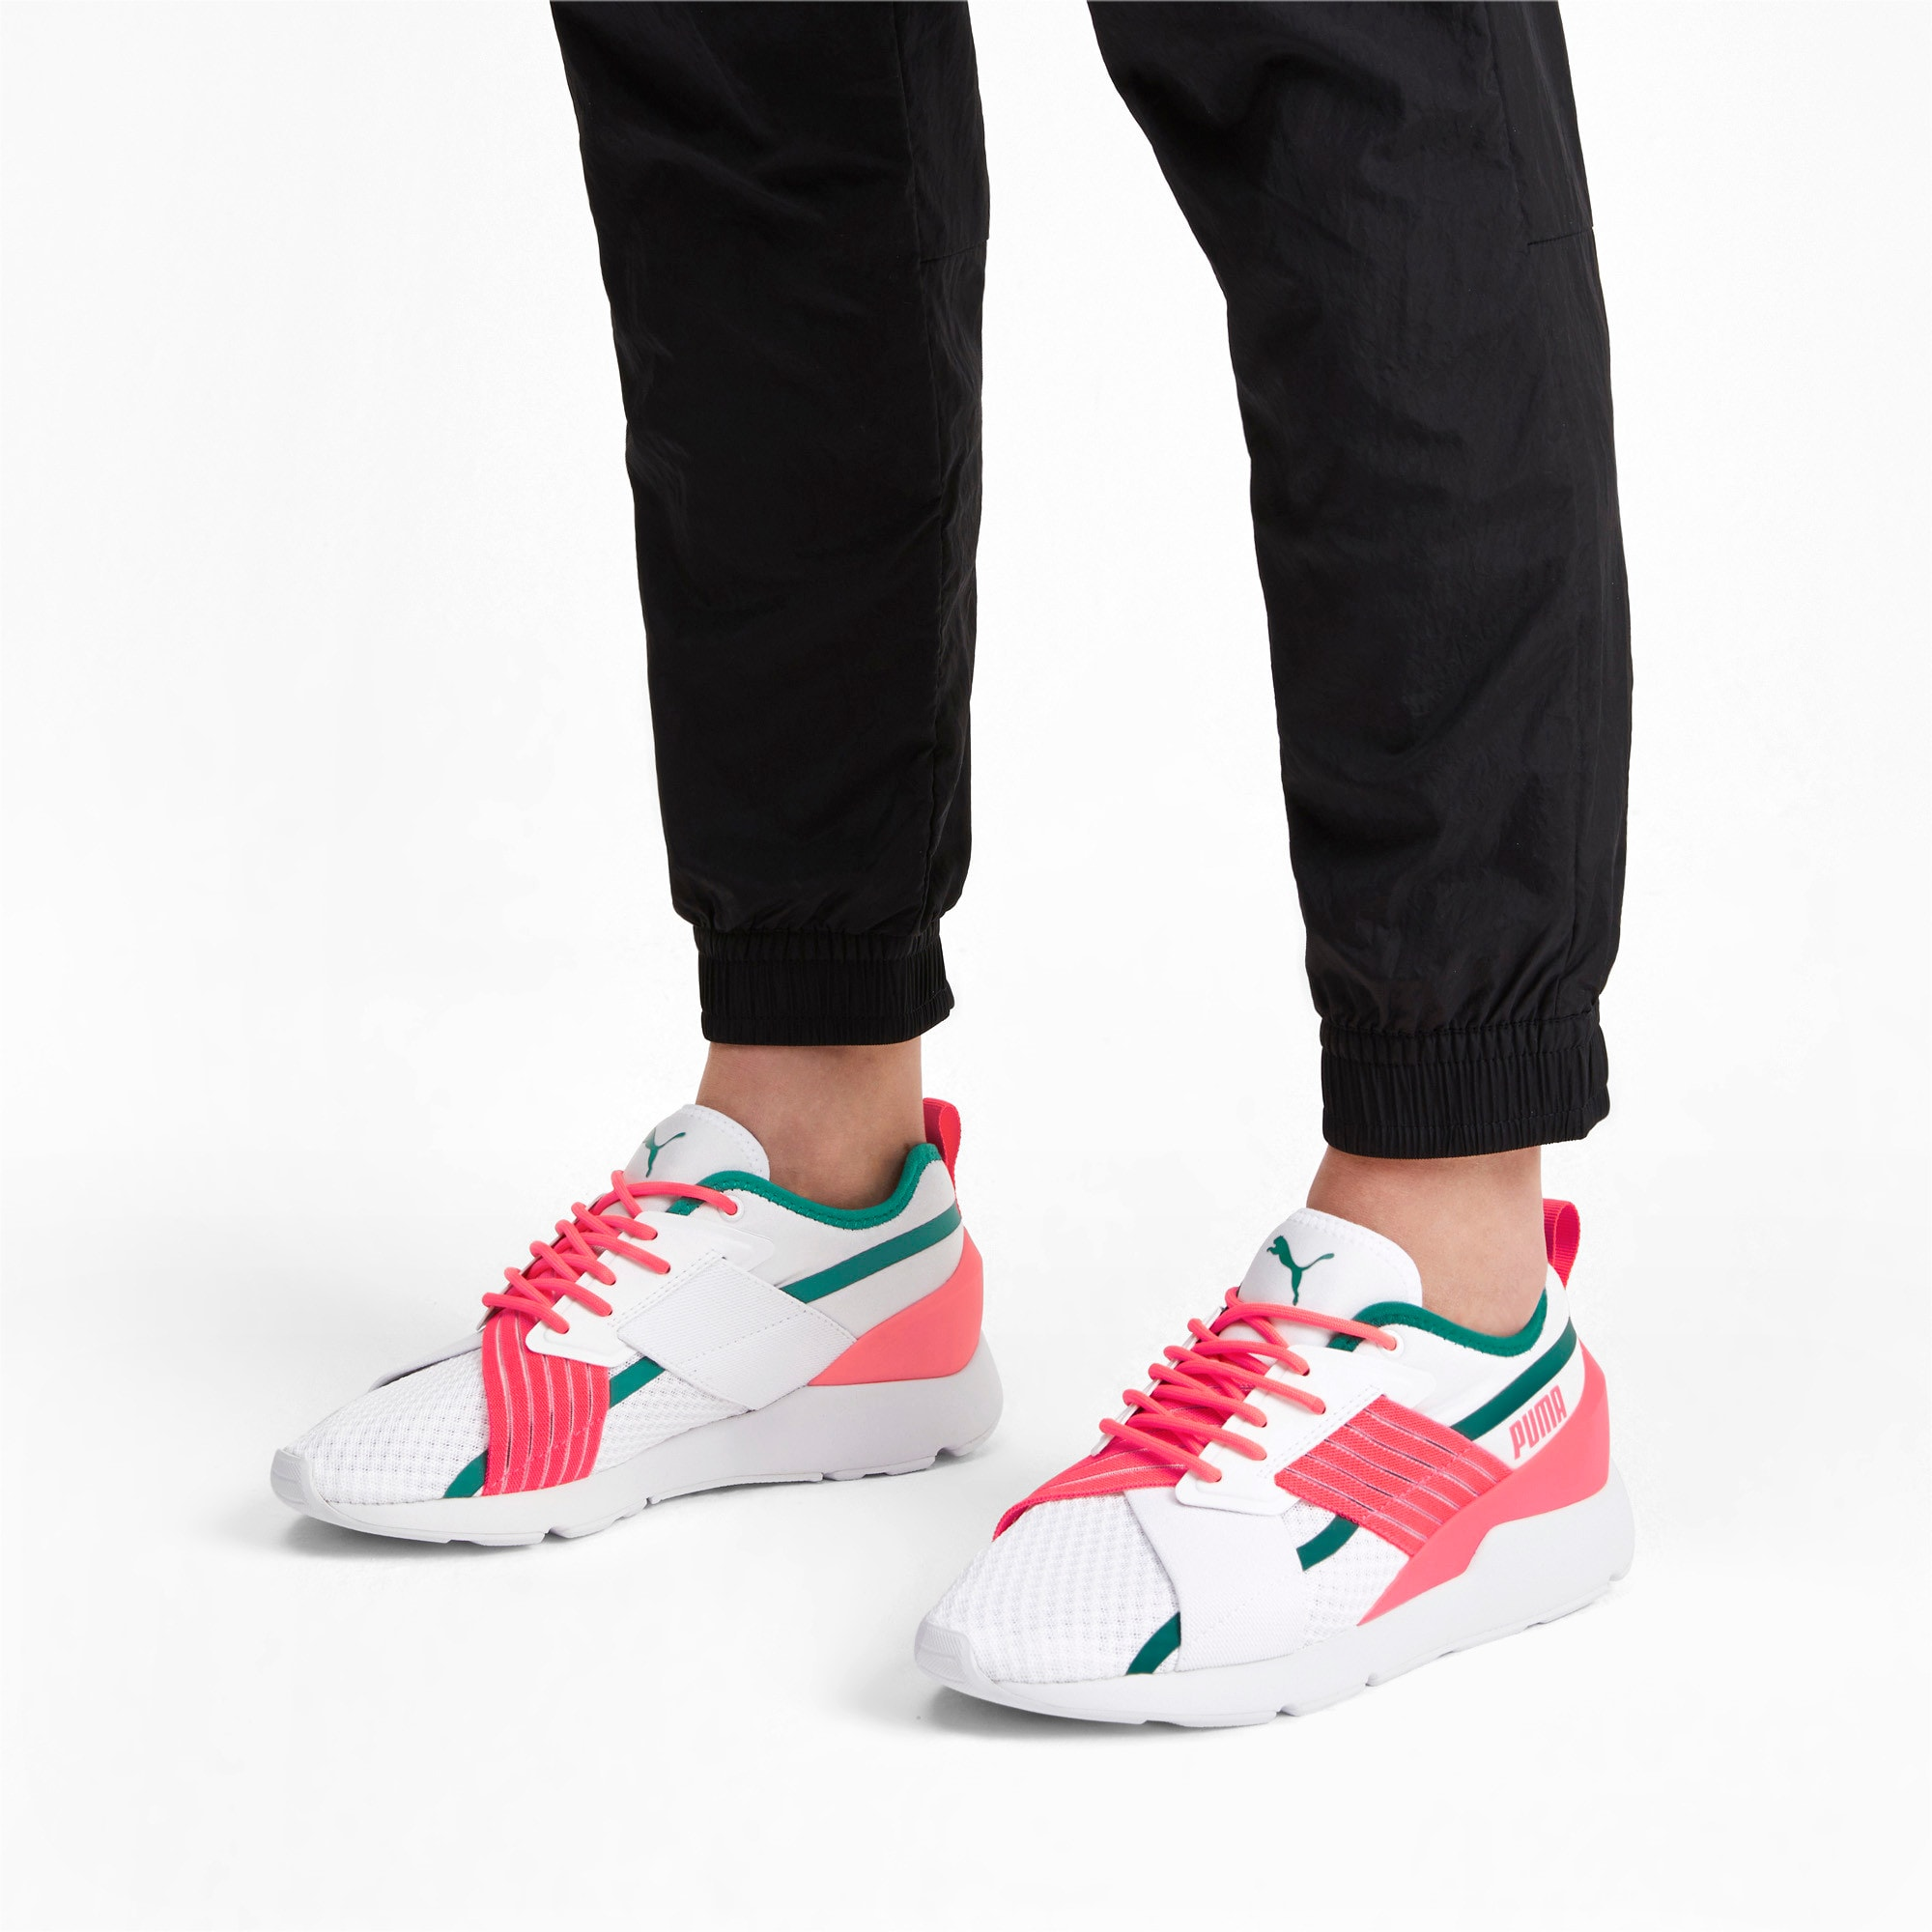 Thumbnail 2 of Muse X-2 Women's Trainers, Puma White-Pink Alert, medium